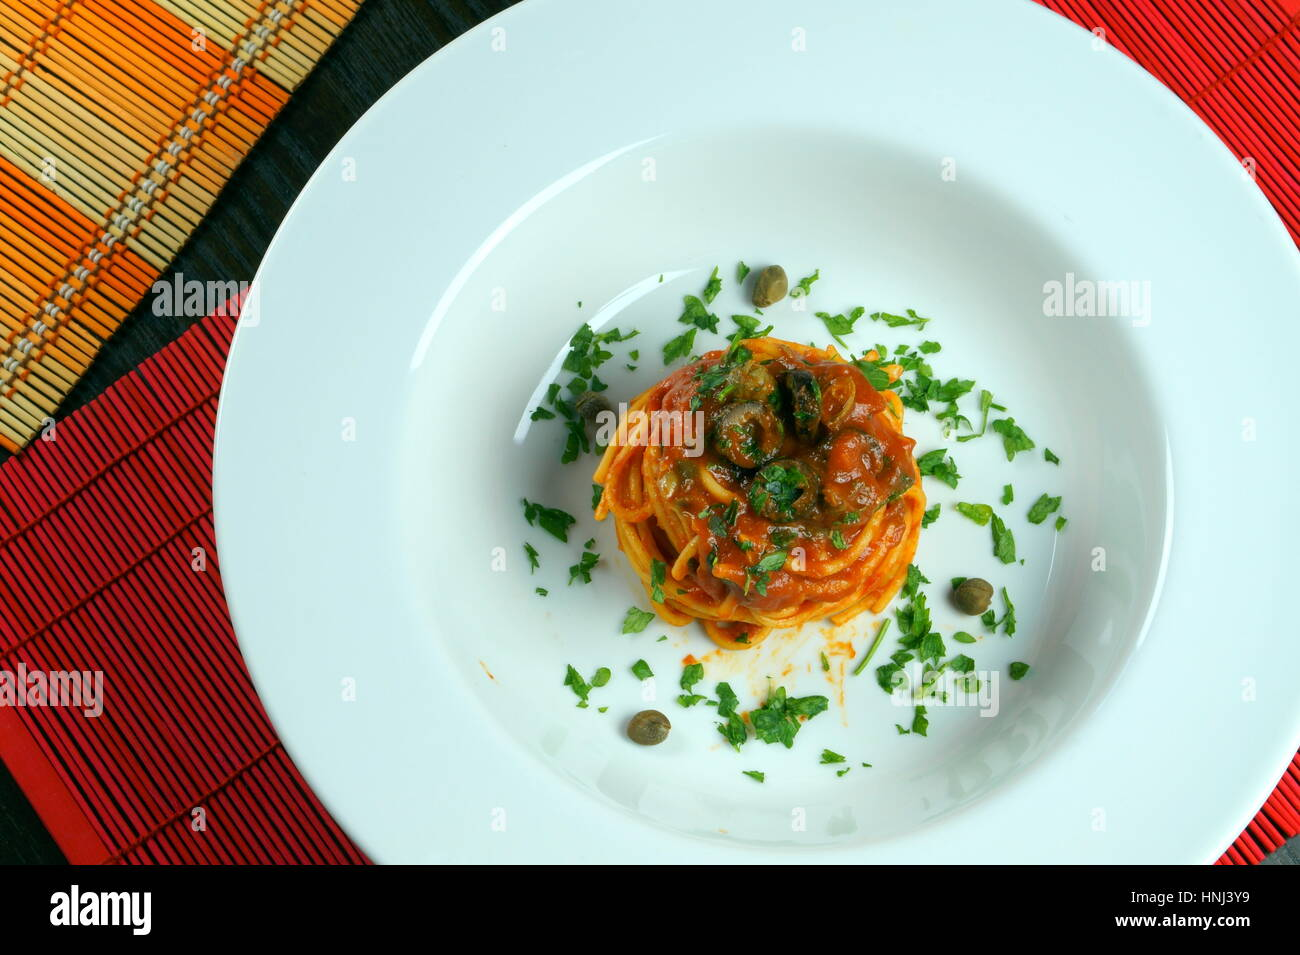 Spaghetti puttanesca on colorful placemats lying on wooden table - Italian recipe with garlic, olive oil, anchovies, Stock Photo